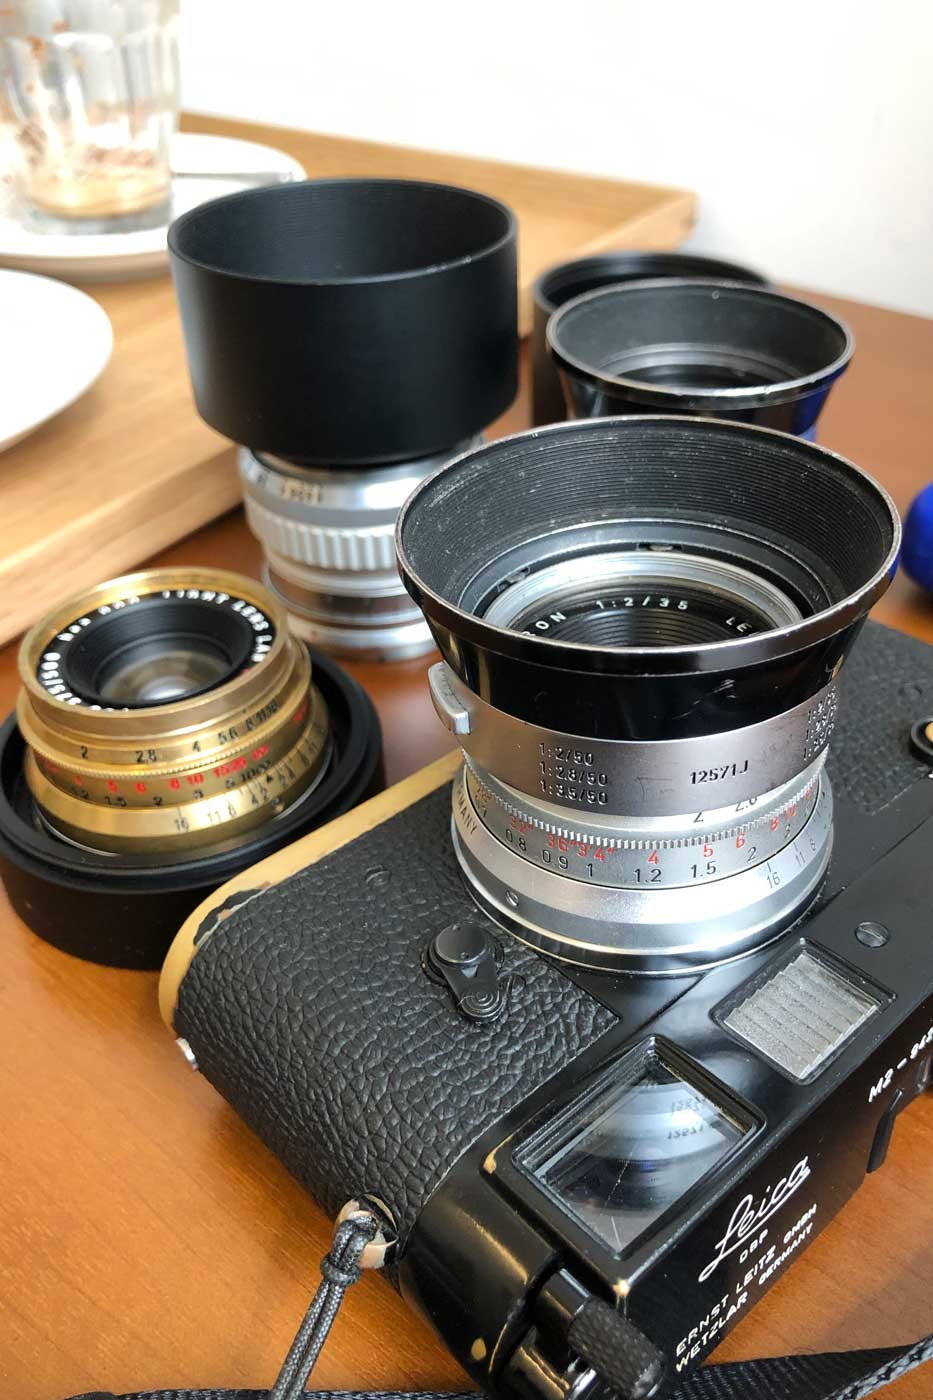 light-lens-lab-35mm-f2-35:2-LLL-Leica-Summicron-2.0-brass-black-paint-m2-brassed-hk-review-lens-lenses-original-8-elements-周八枚coffee-versions-septac